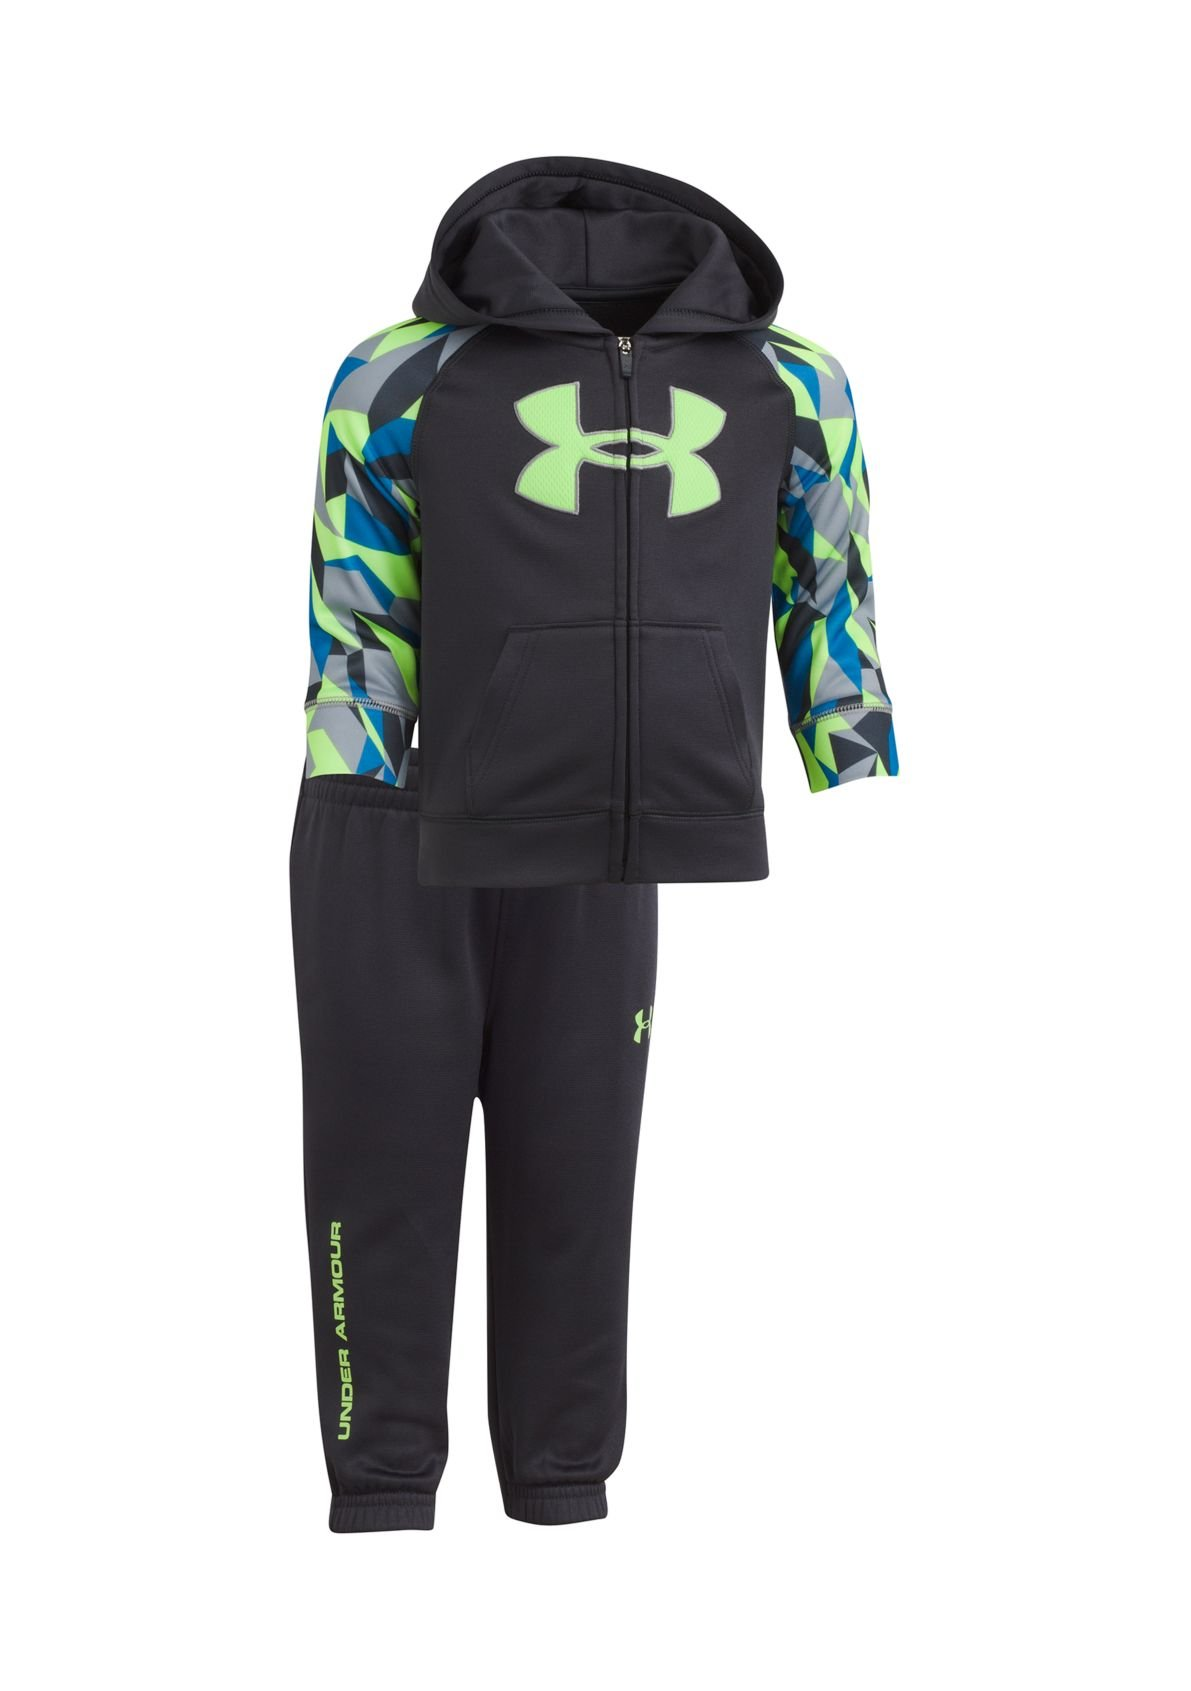 60d300f5 Under Armour Baby Boys' Utility Hoodie Track Set  (Anthracite(27D92058-11)/Geo Print, 0-3 Months)